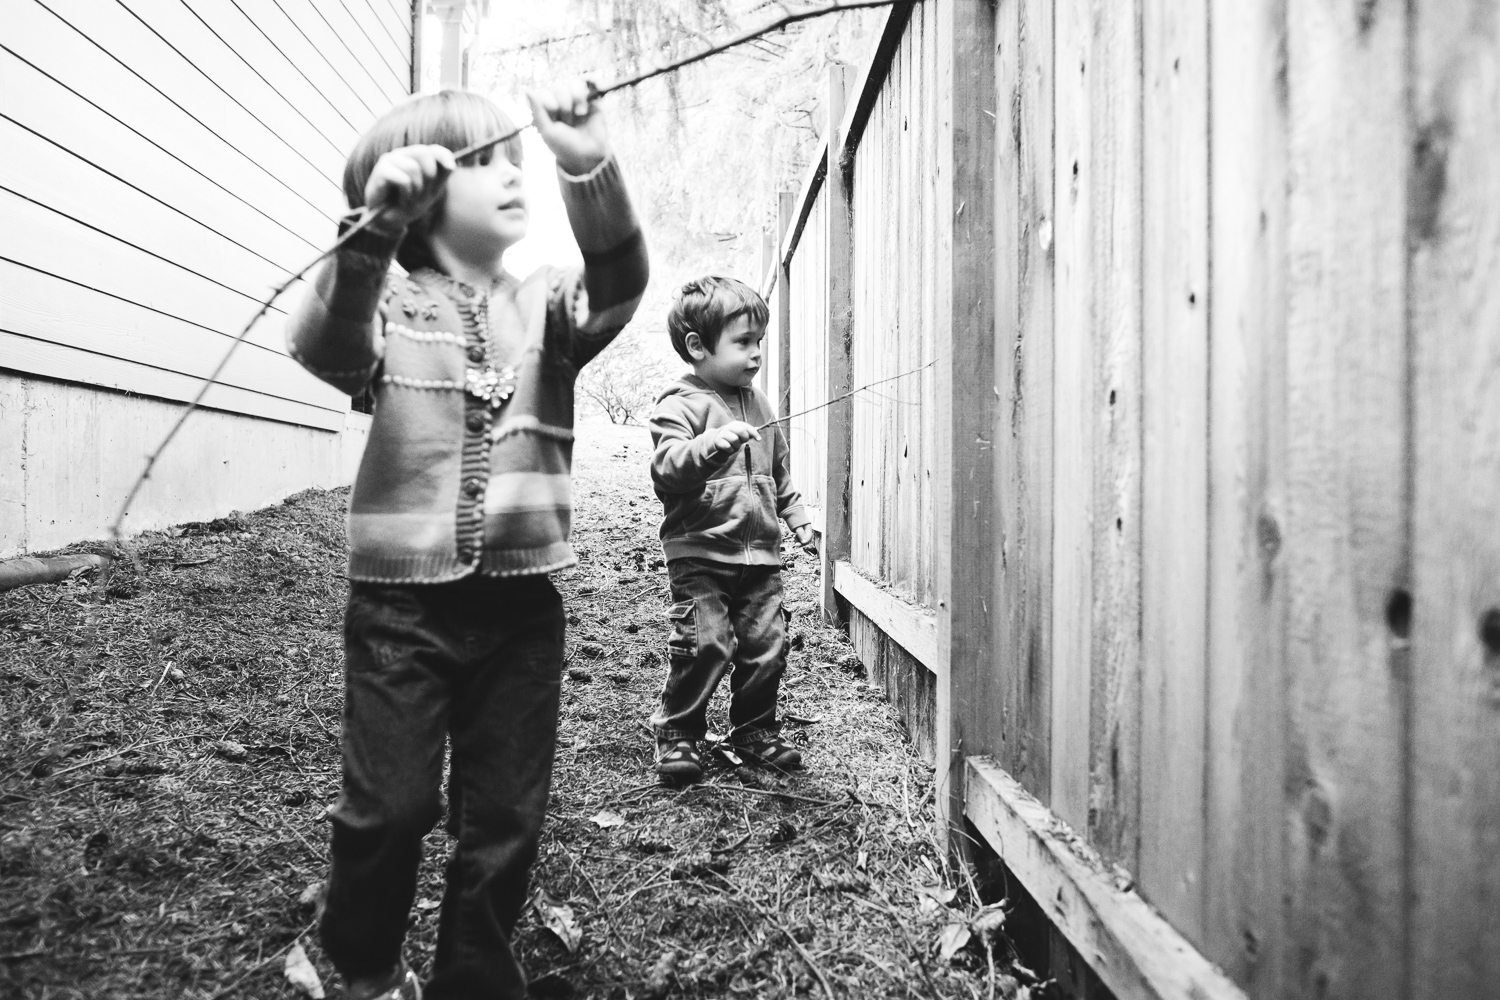 boy and girl playing with sticks outside